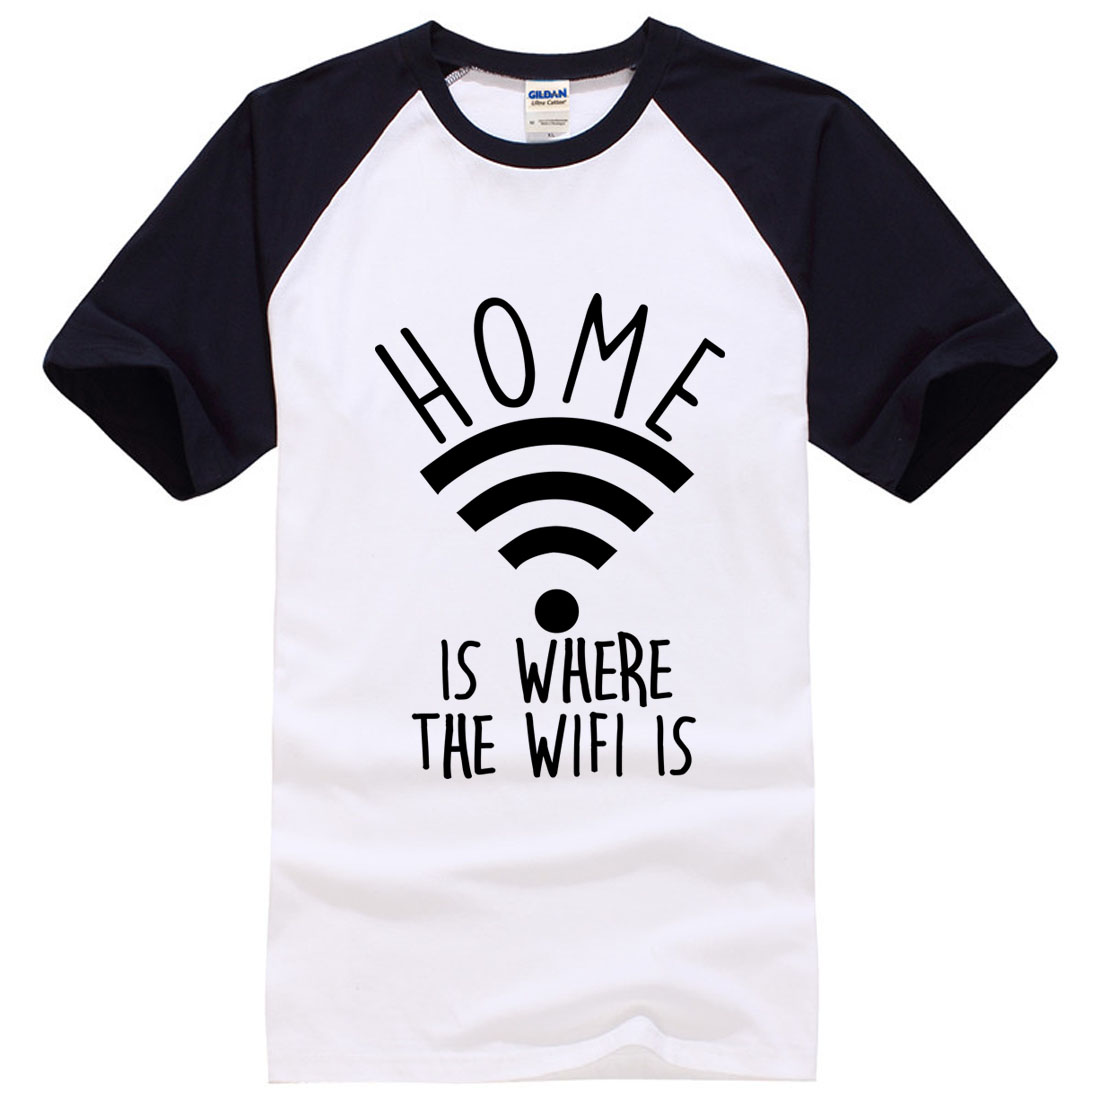 4efa9eaf2b9a6 Home Is Where The Wifi Is Mens Internet Fashion brand tops Fit T Shirt men  summer t shirt male funny t shirts cotton 100% tops-in T-Shirts from Men s  ...